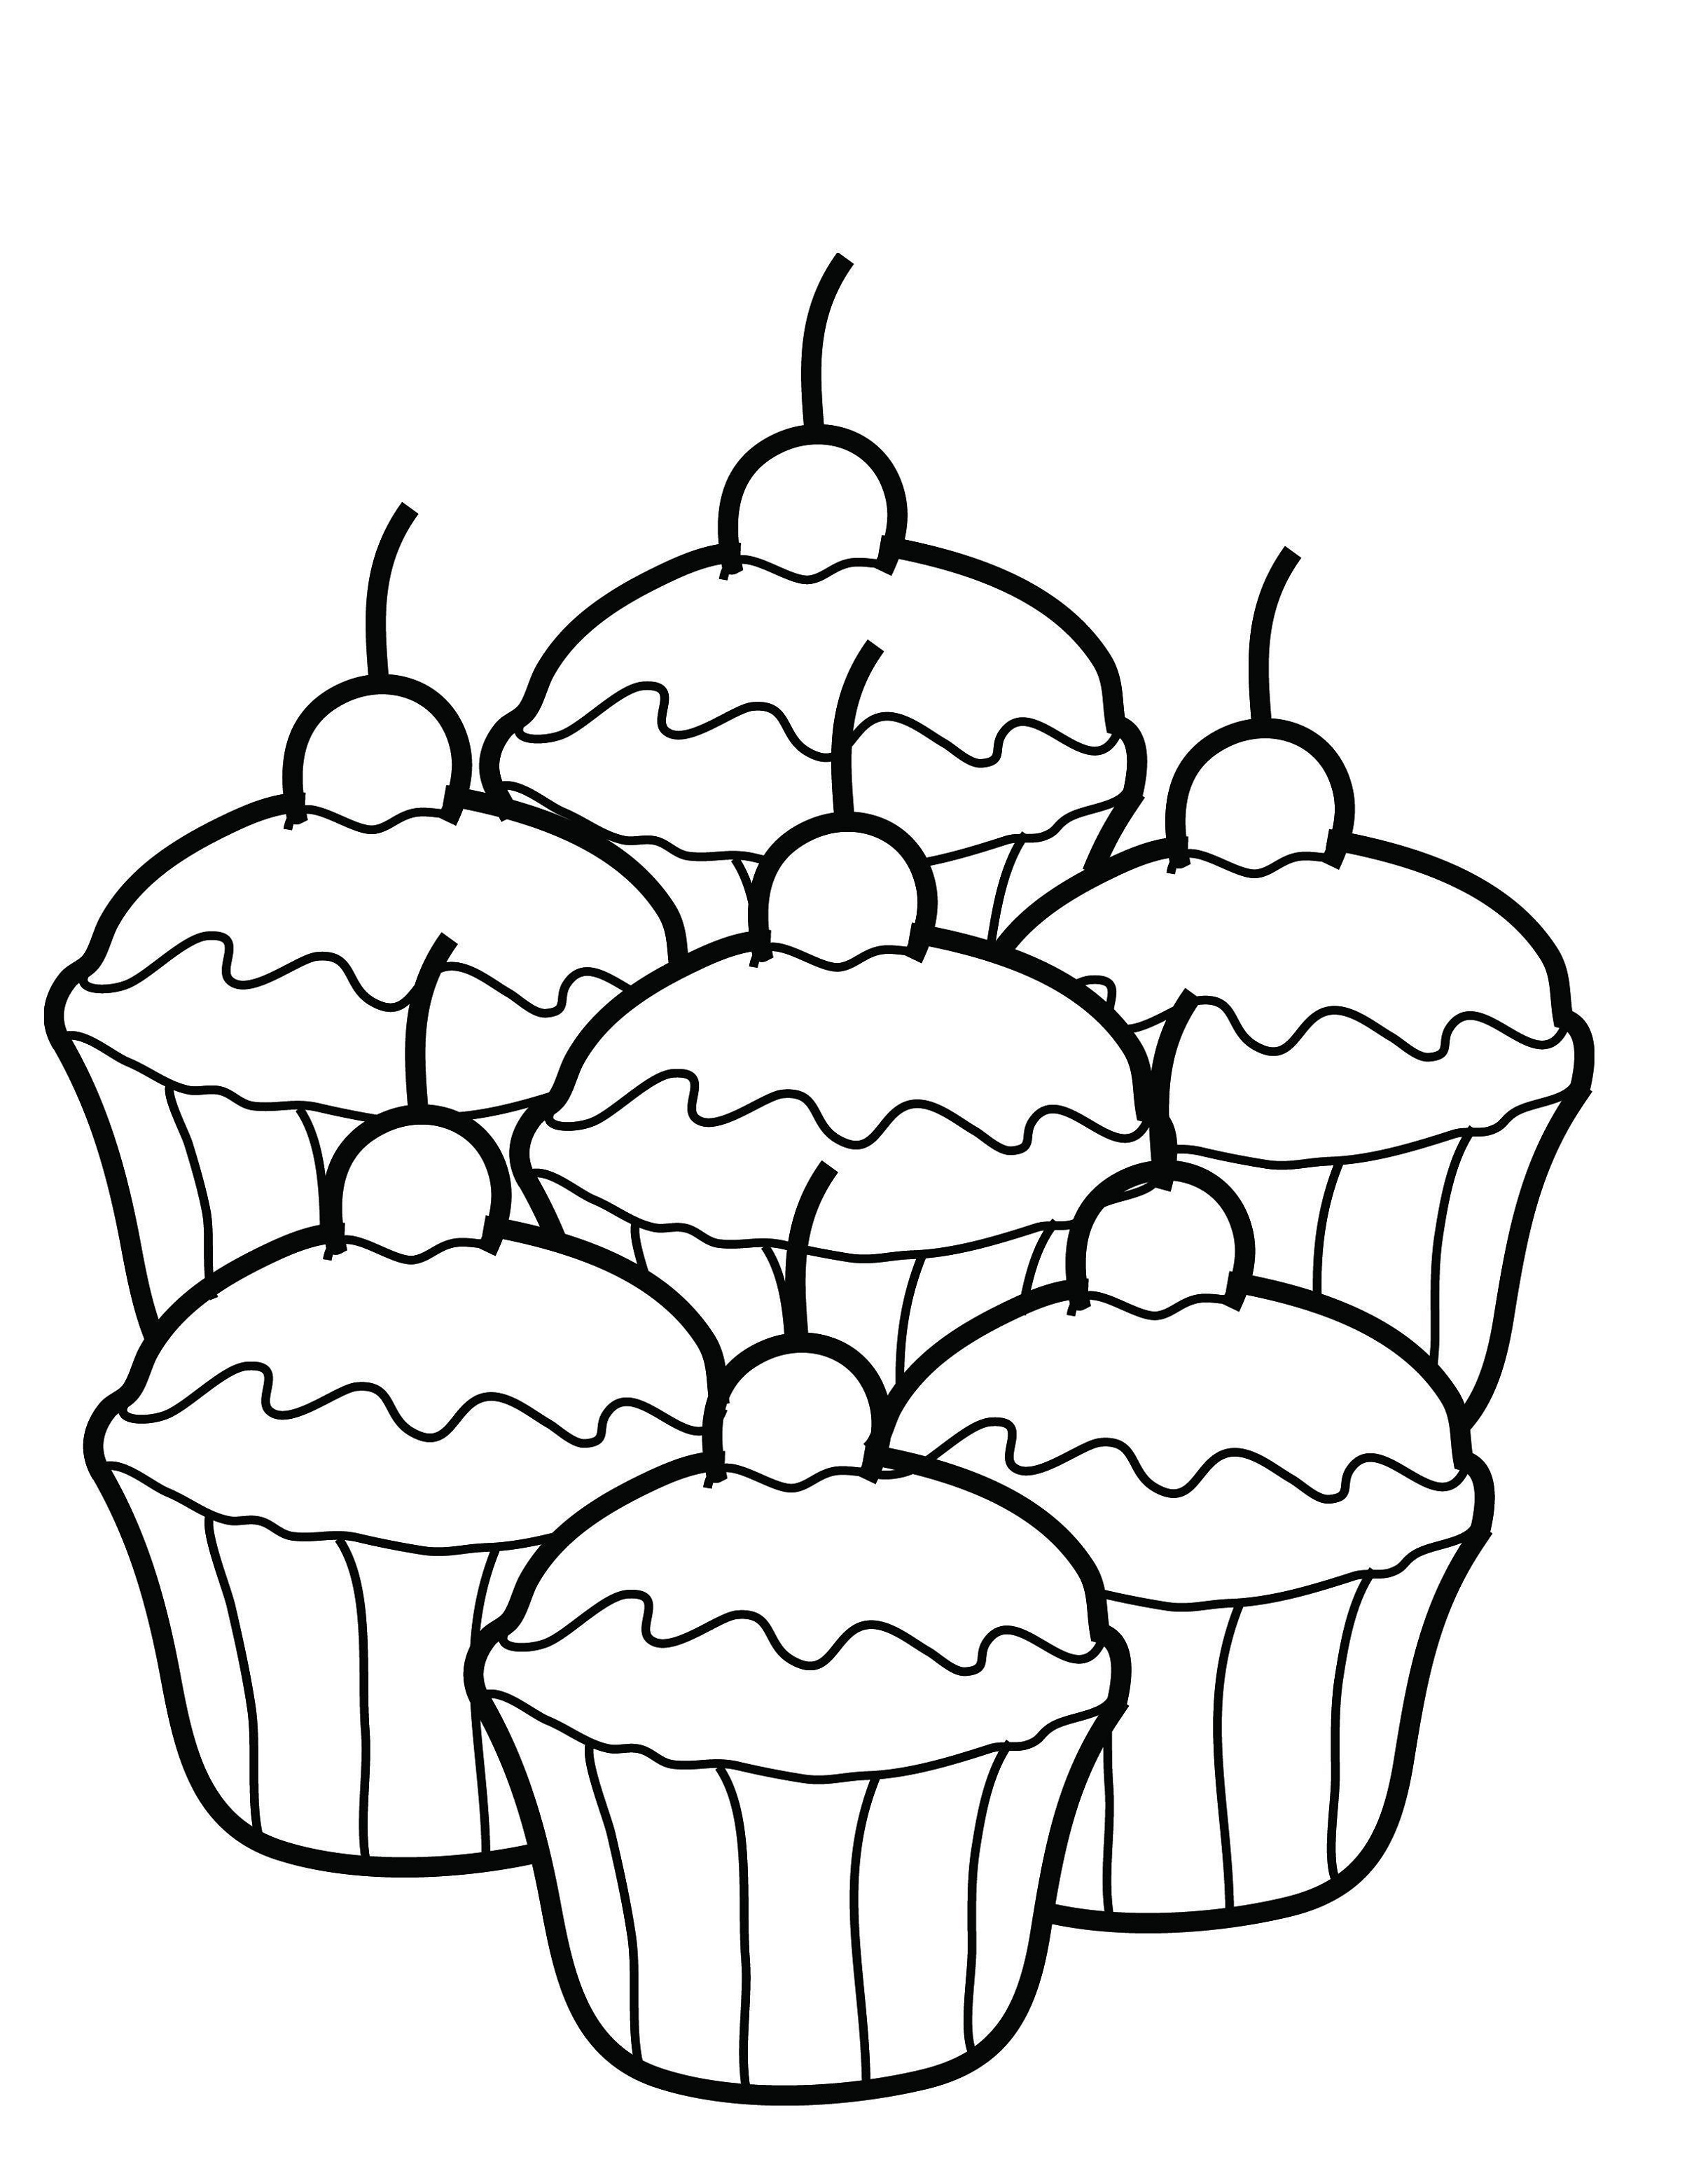 Coloring pages to print for children - Coloring Pages Printable Cupcakes